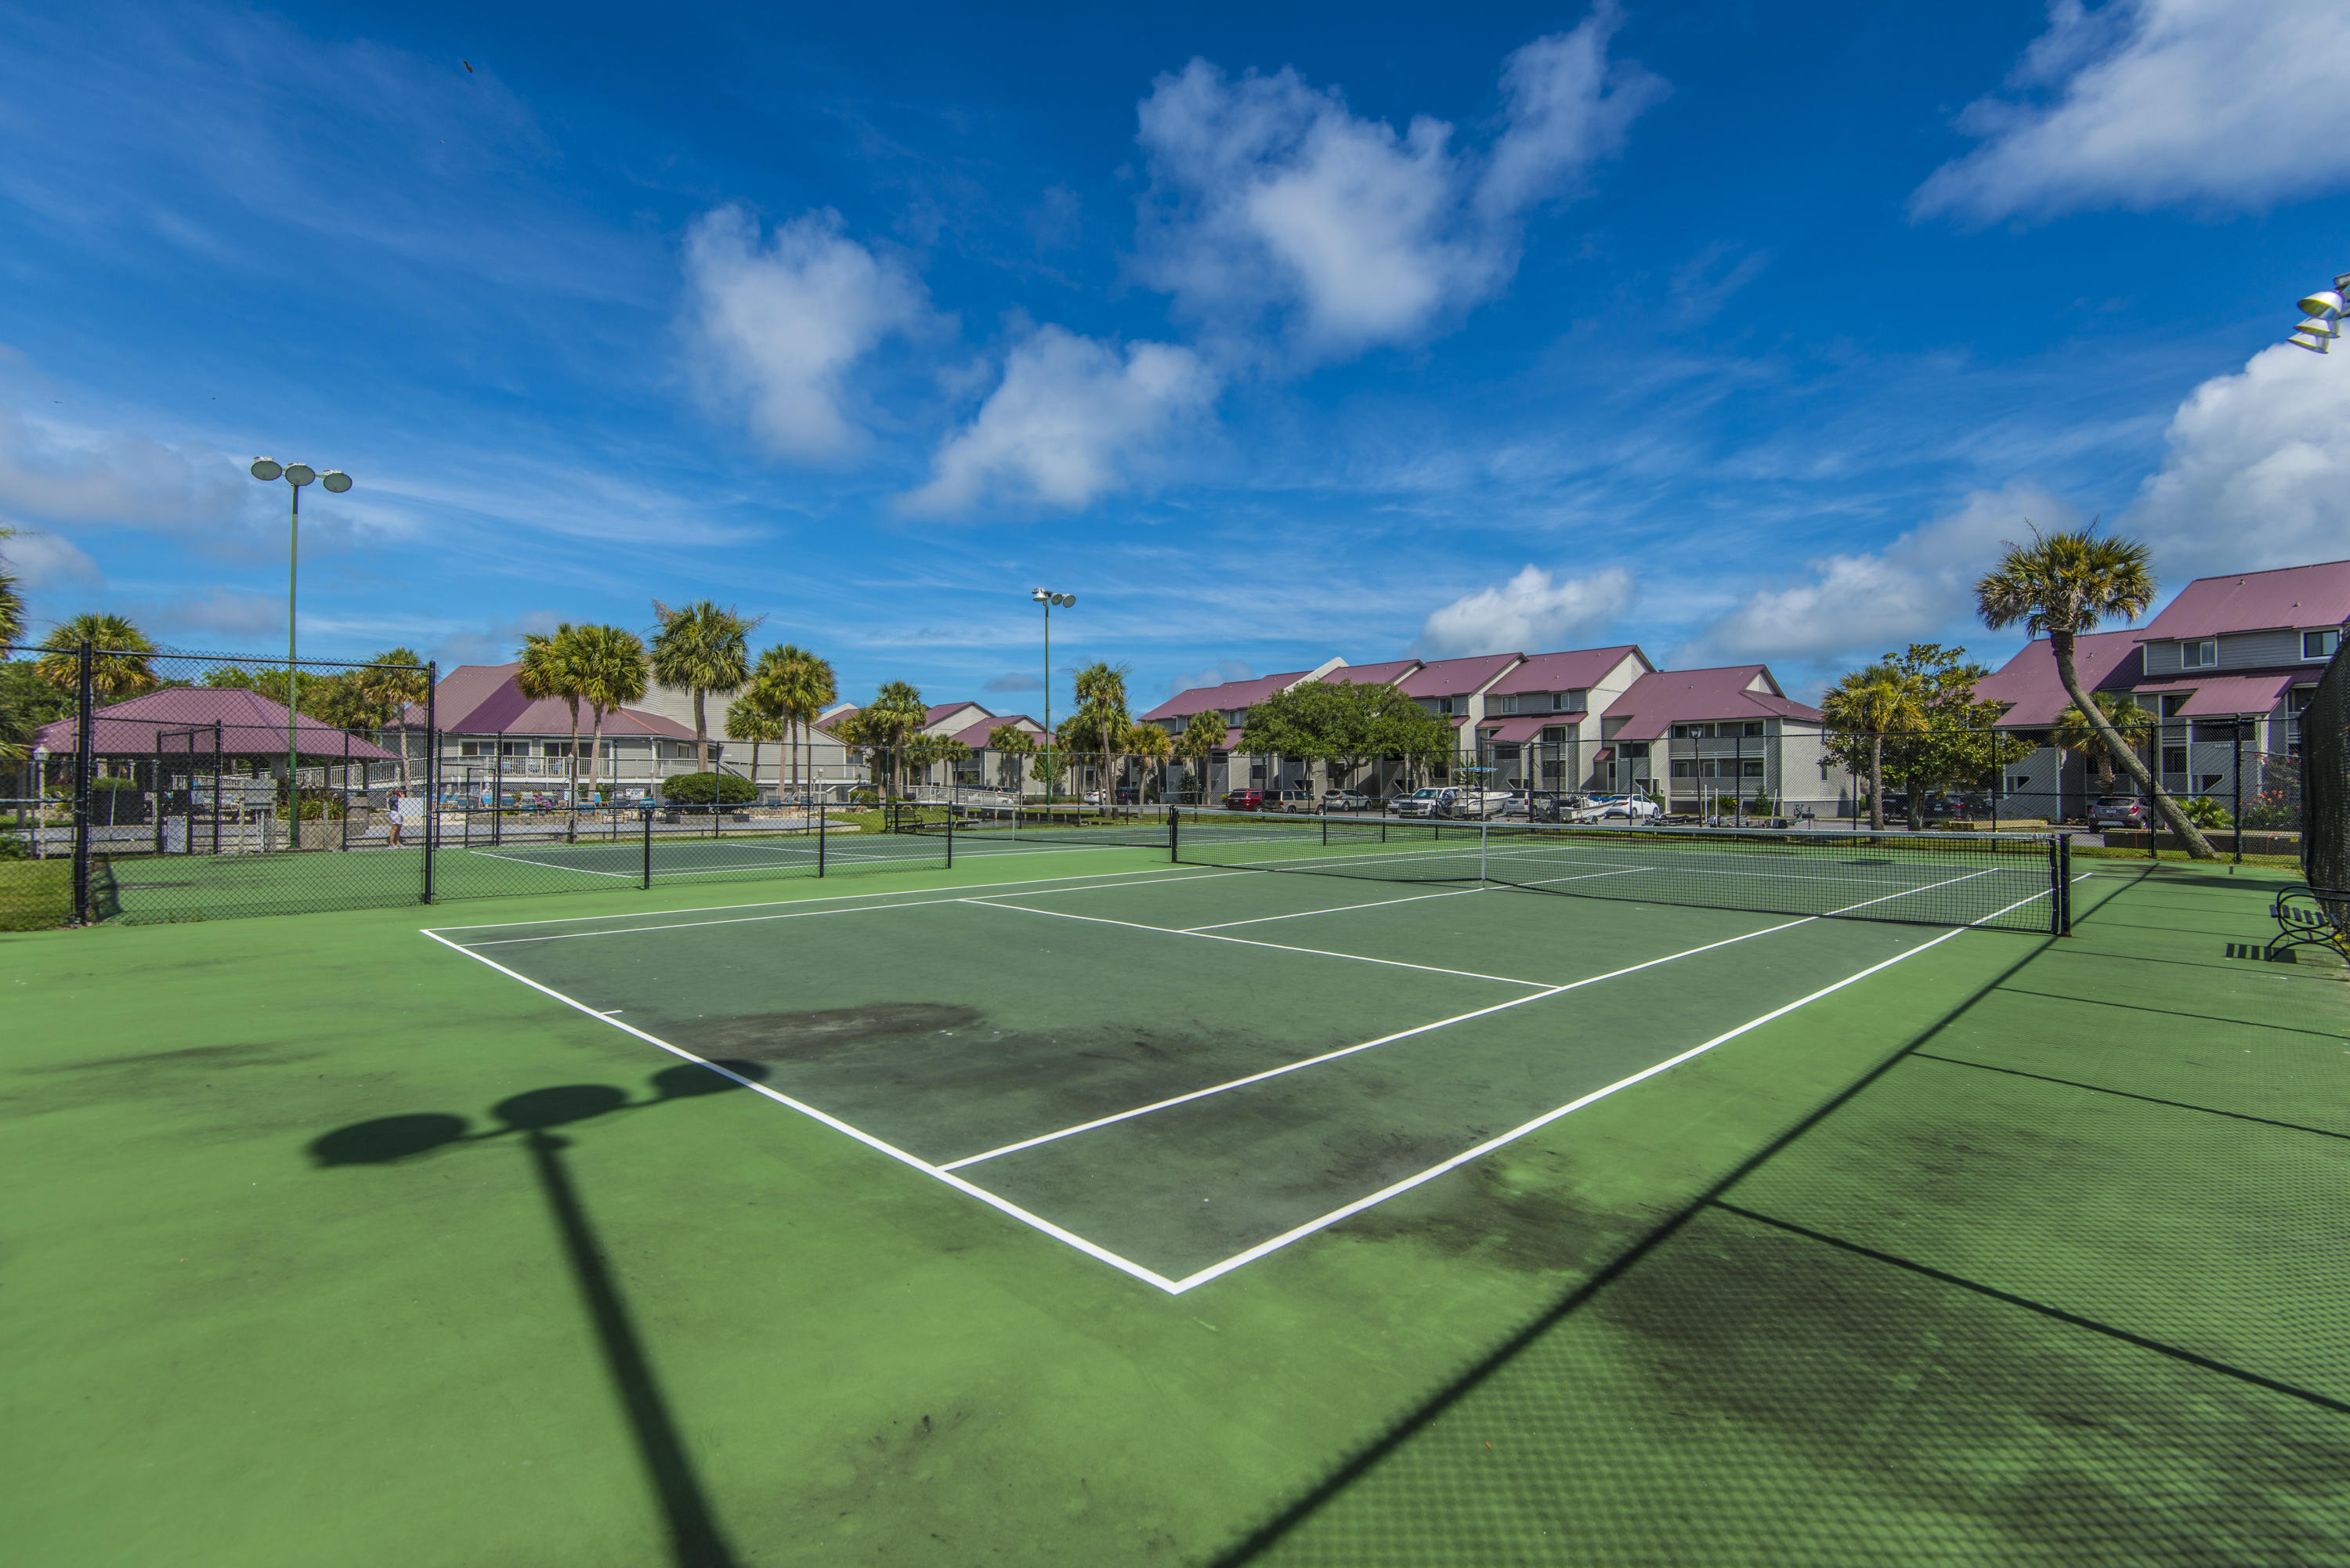 Mariners Cay Homes For Sale - 71 Mariners Cay, Folly Beach, SC - 25